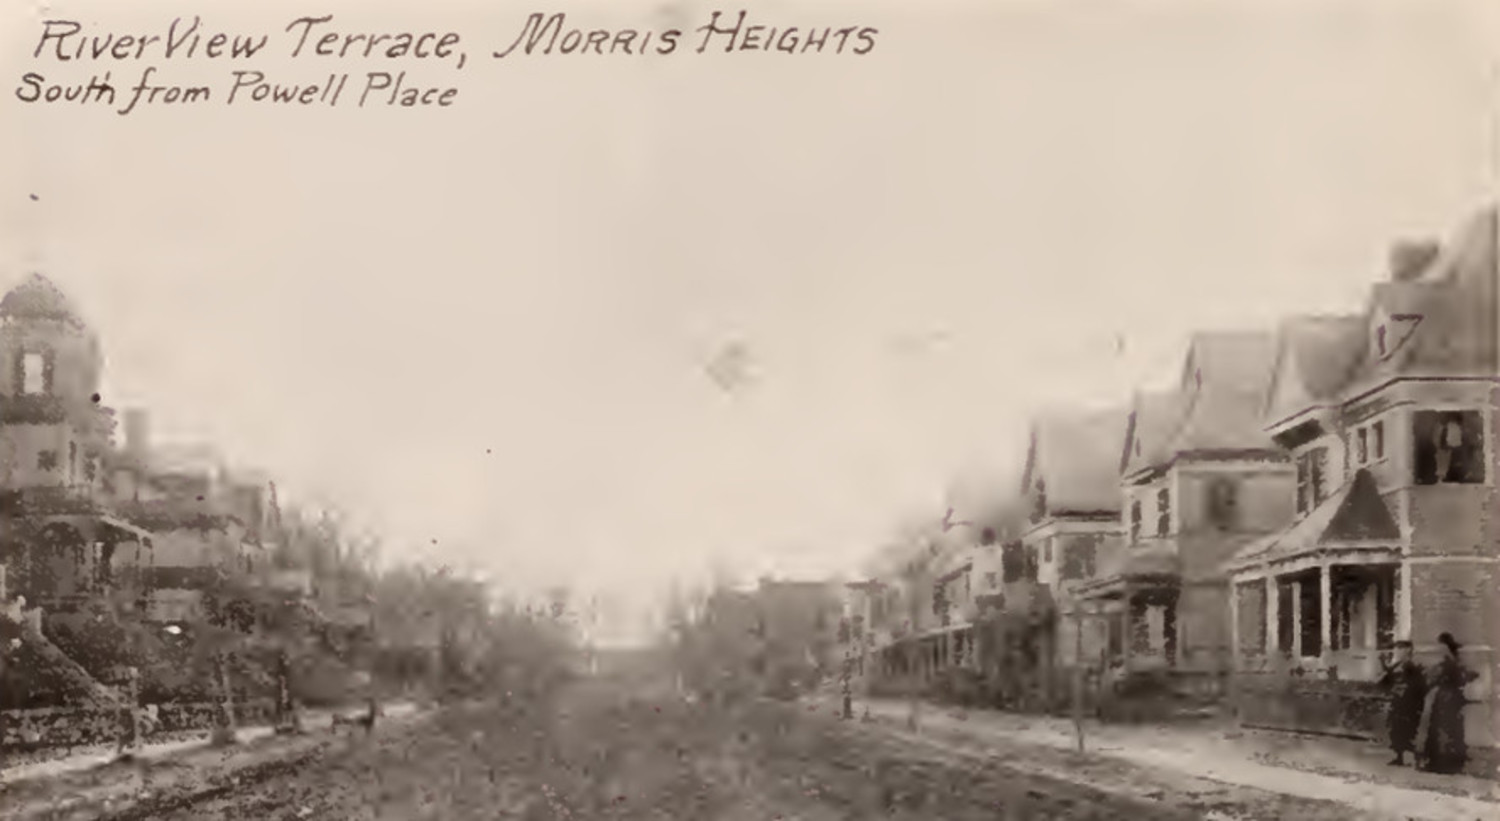 Riverview Terrace from Powell Place Morris Heights Bronx 1897